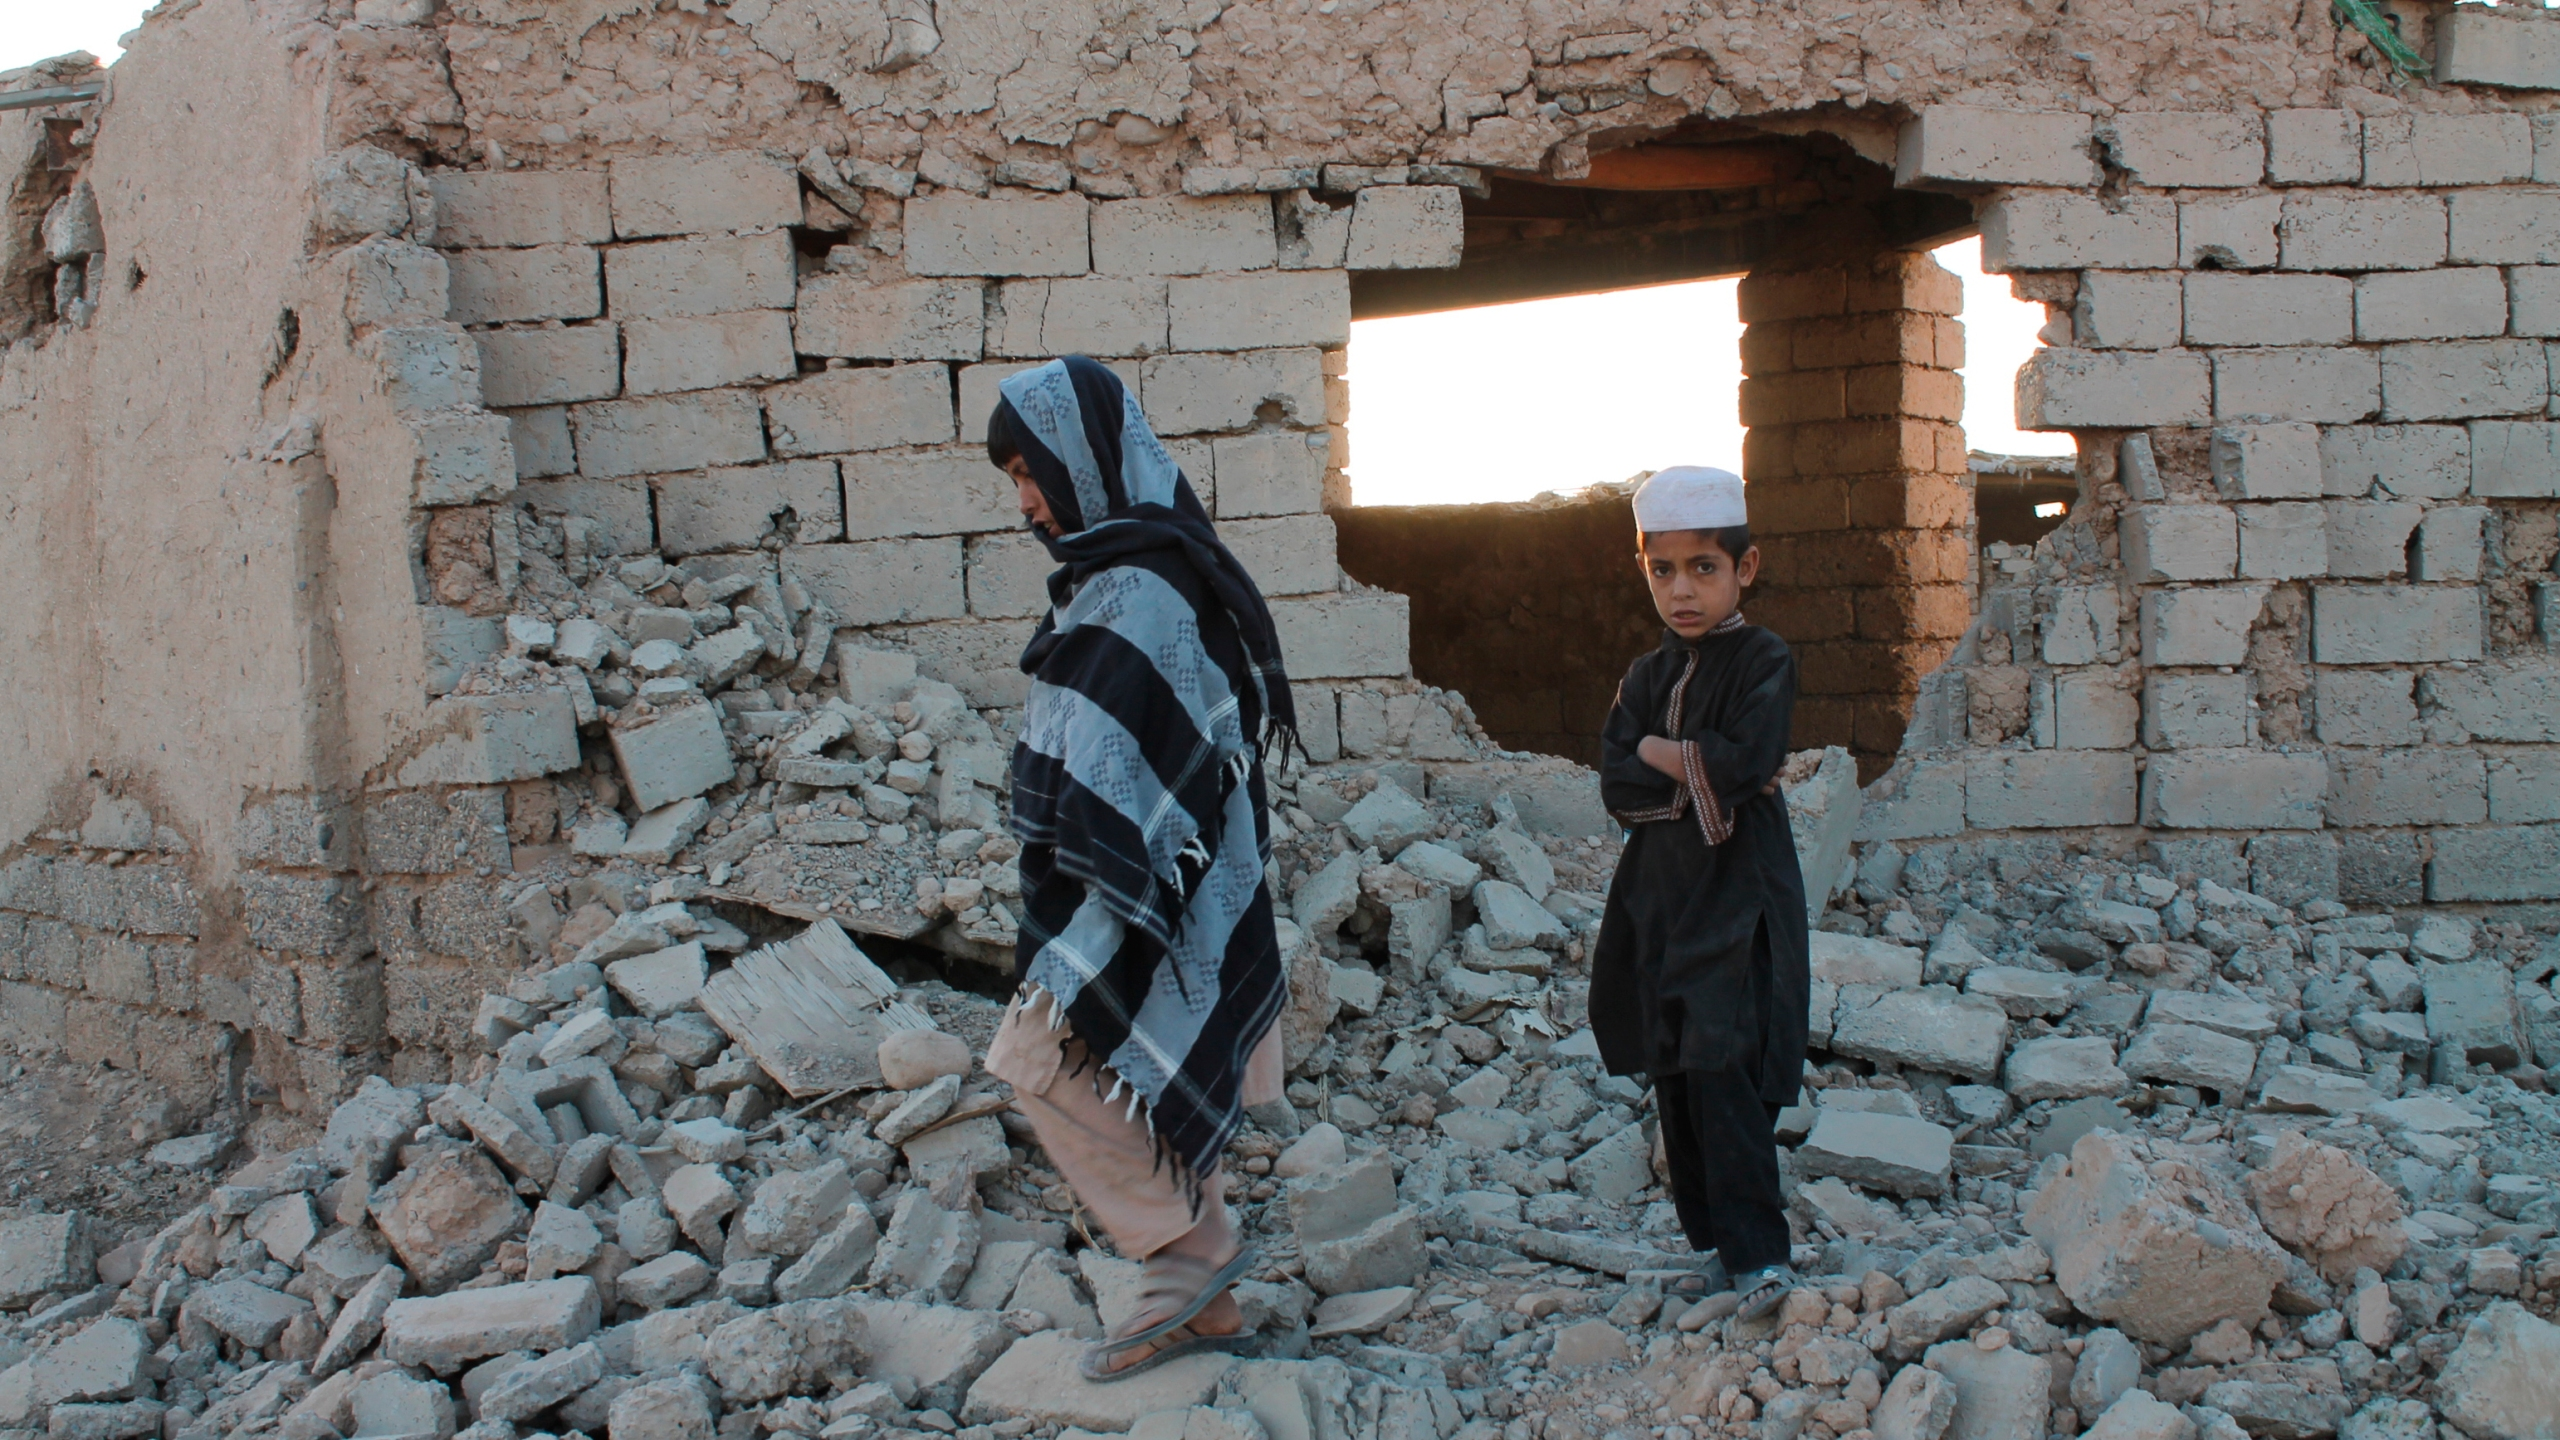 Afghan boys walk near a damaged house after airstrikes in two weeks ago during a fight between government forces and the Taliban in Lashkar Gah, Helmand province, southwestern, Afghanistan, Saturday, Aug. 21, 2021. (AP Photo/Abdul Khaliq)